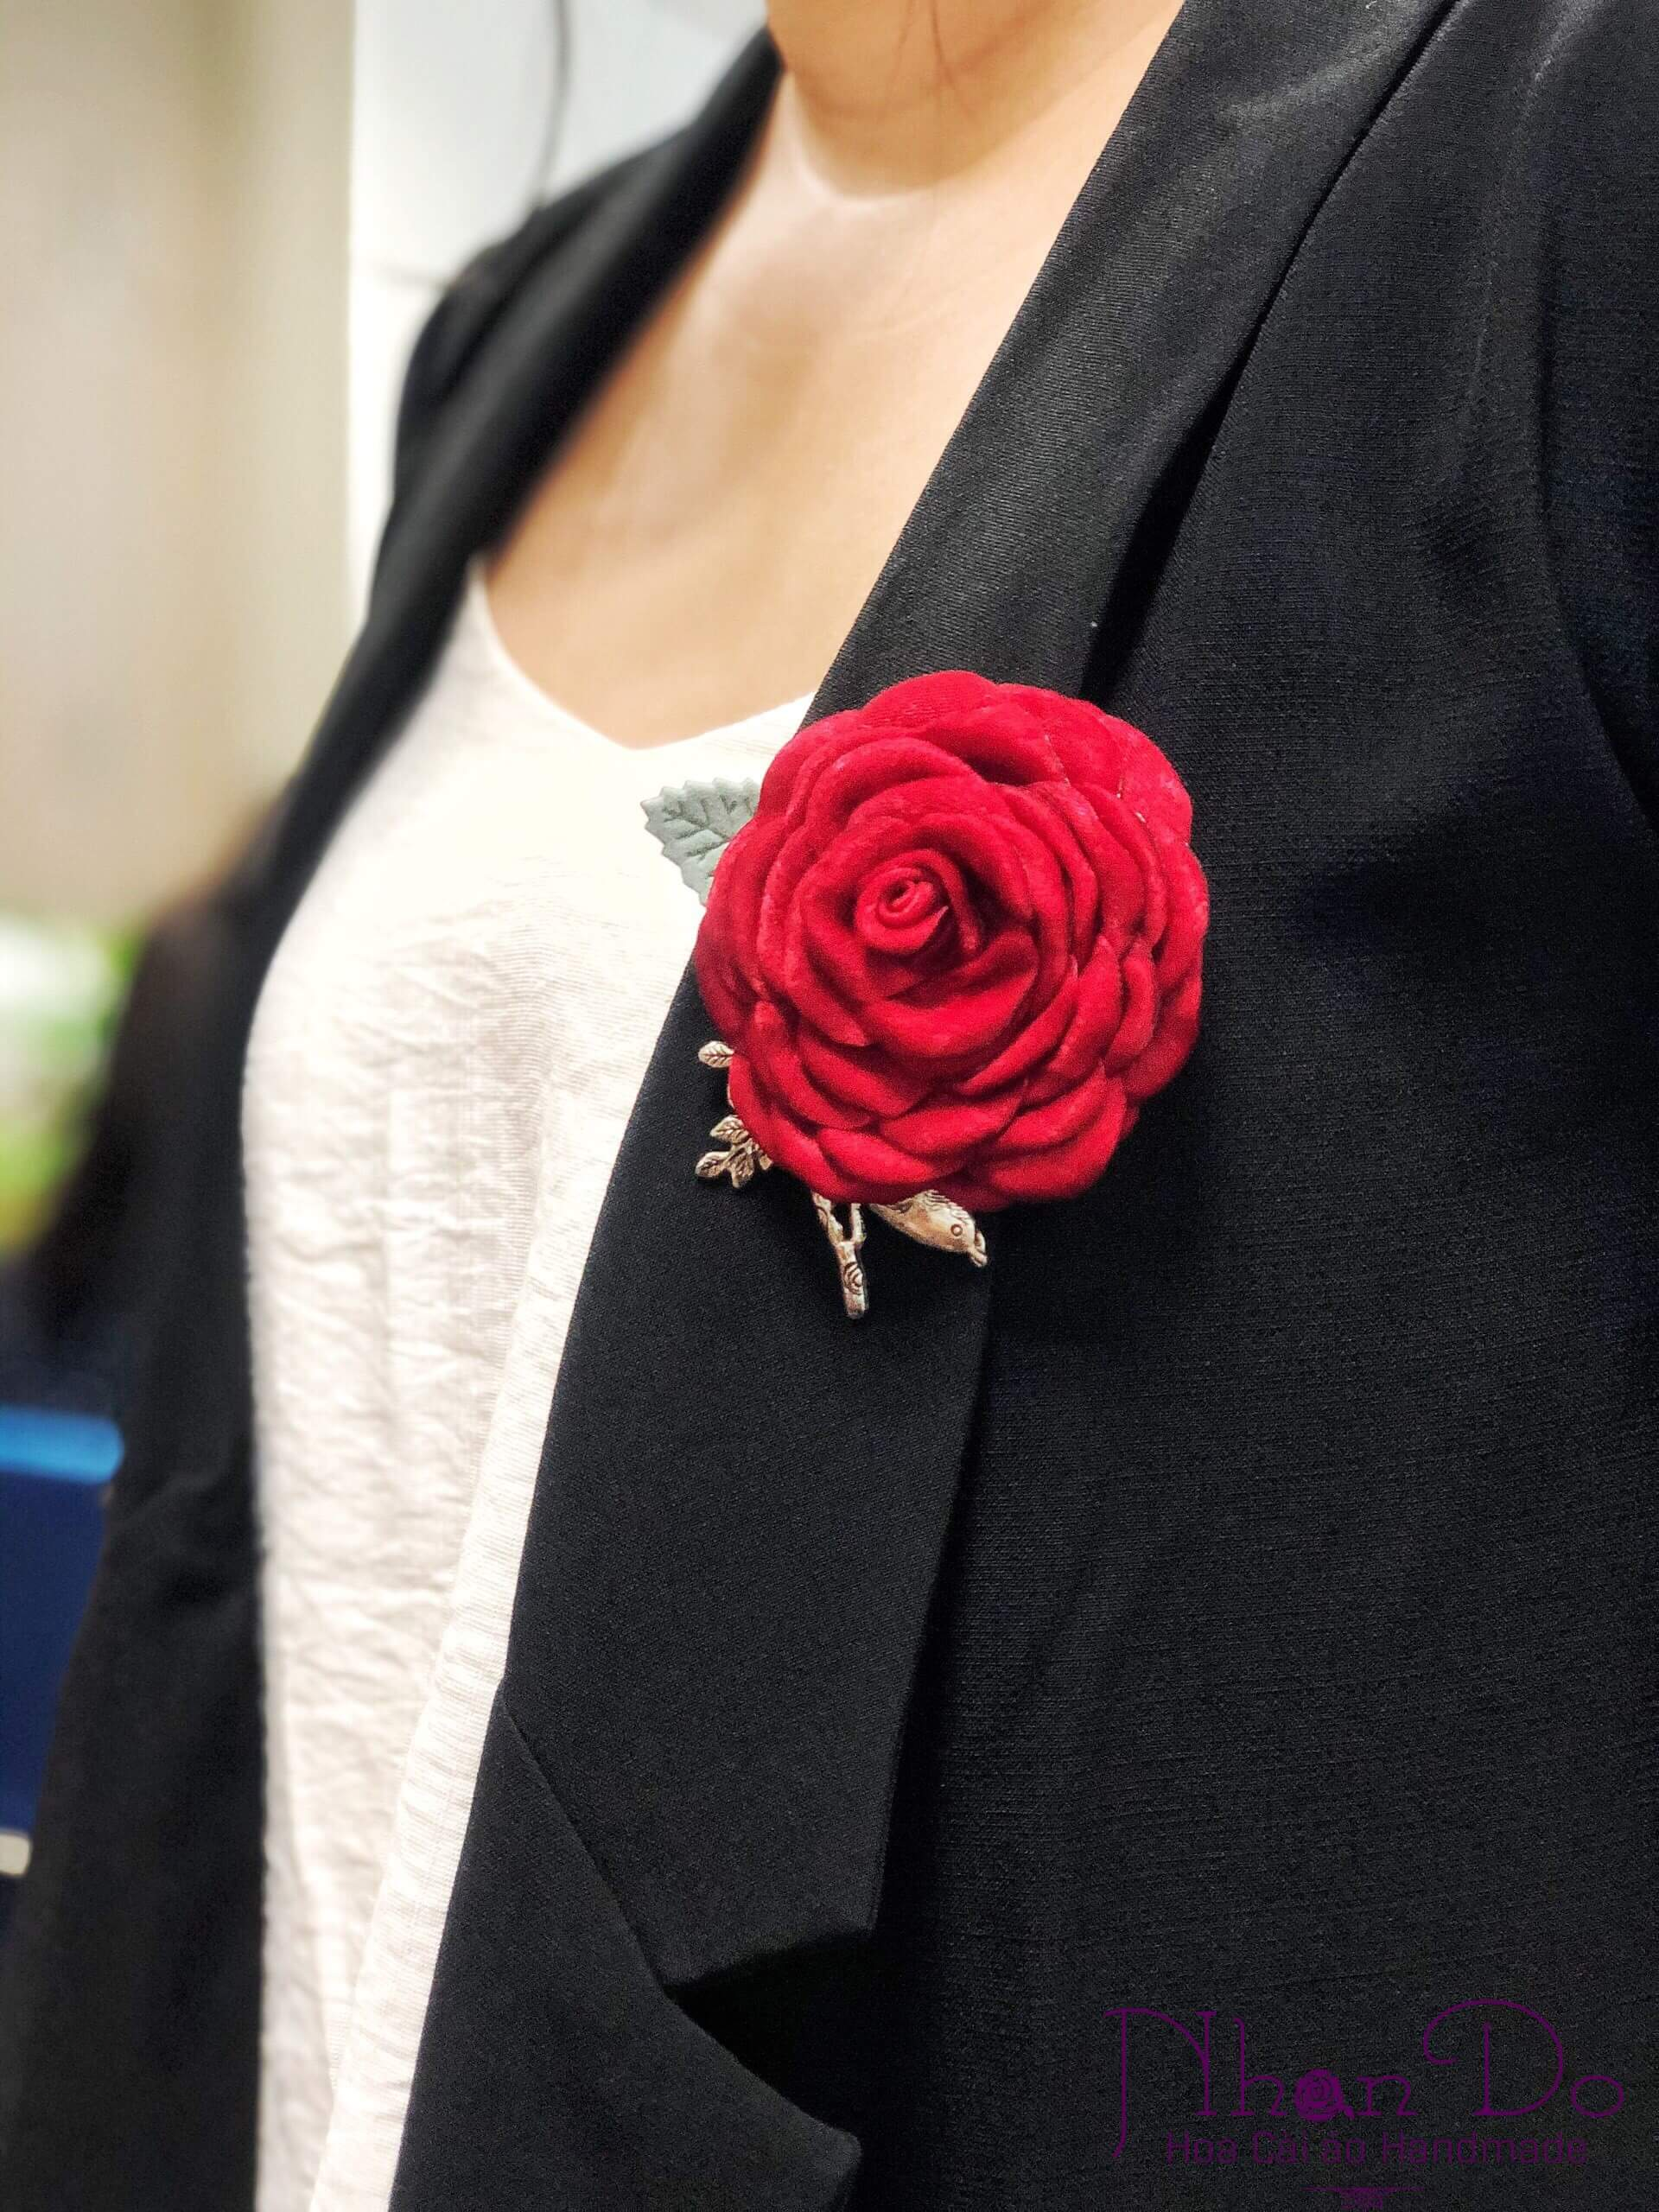 6 Creative Ways To Wear A Brooch